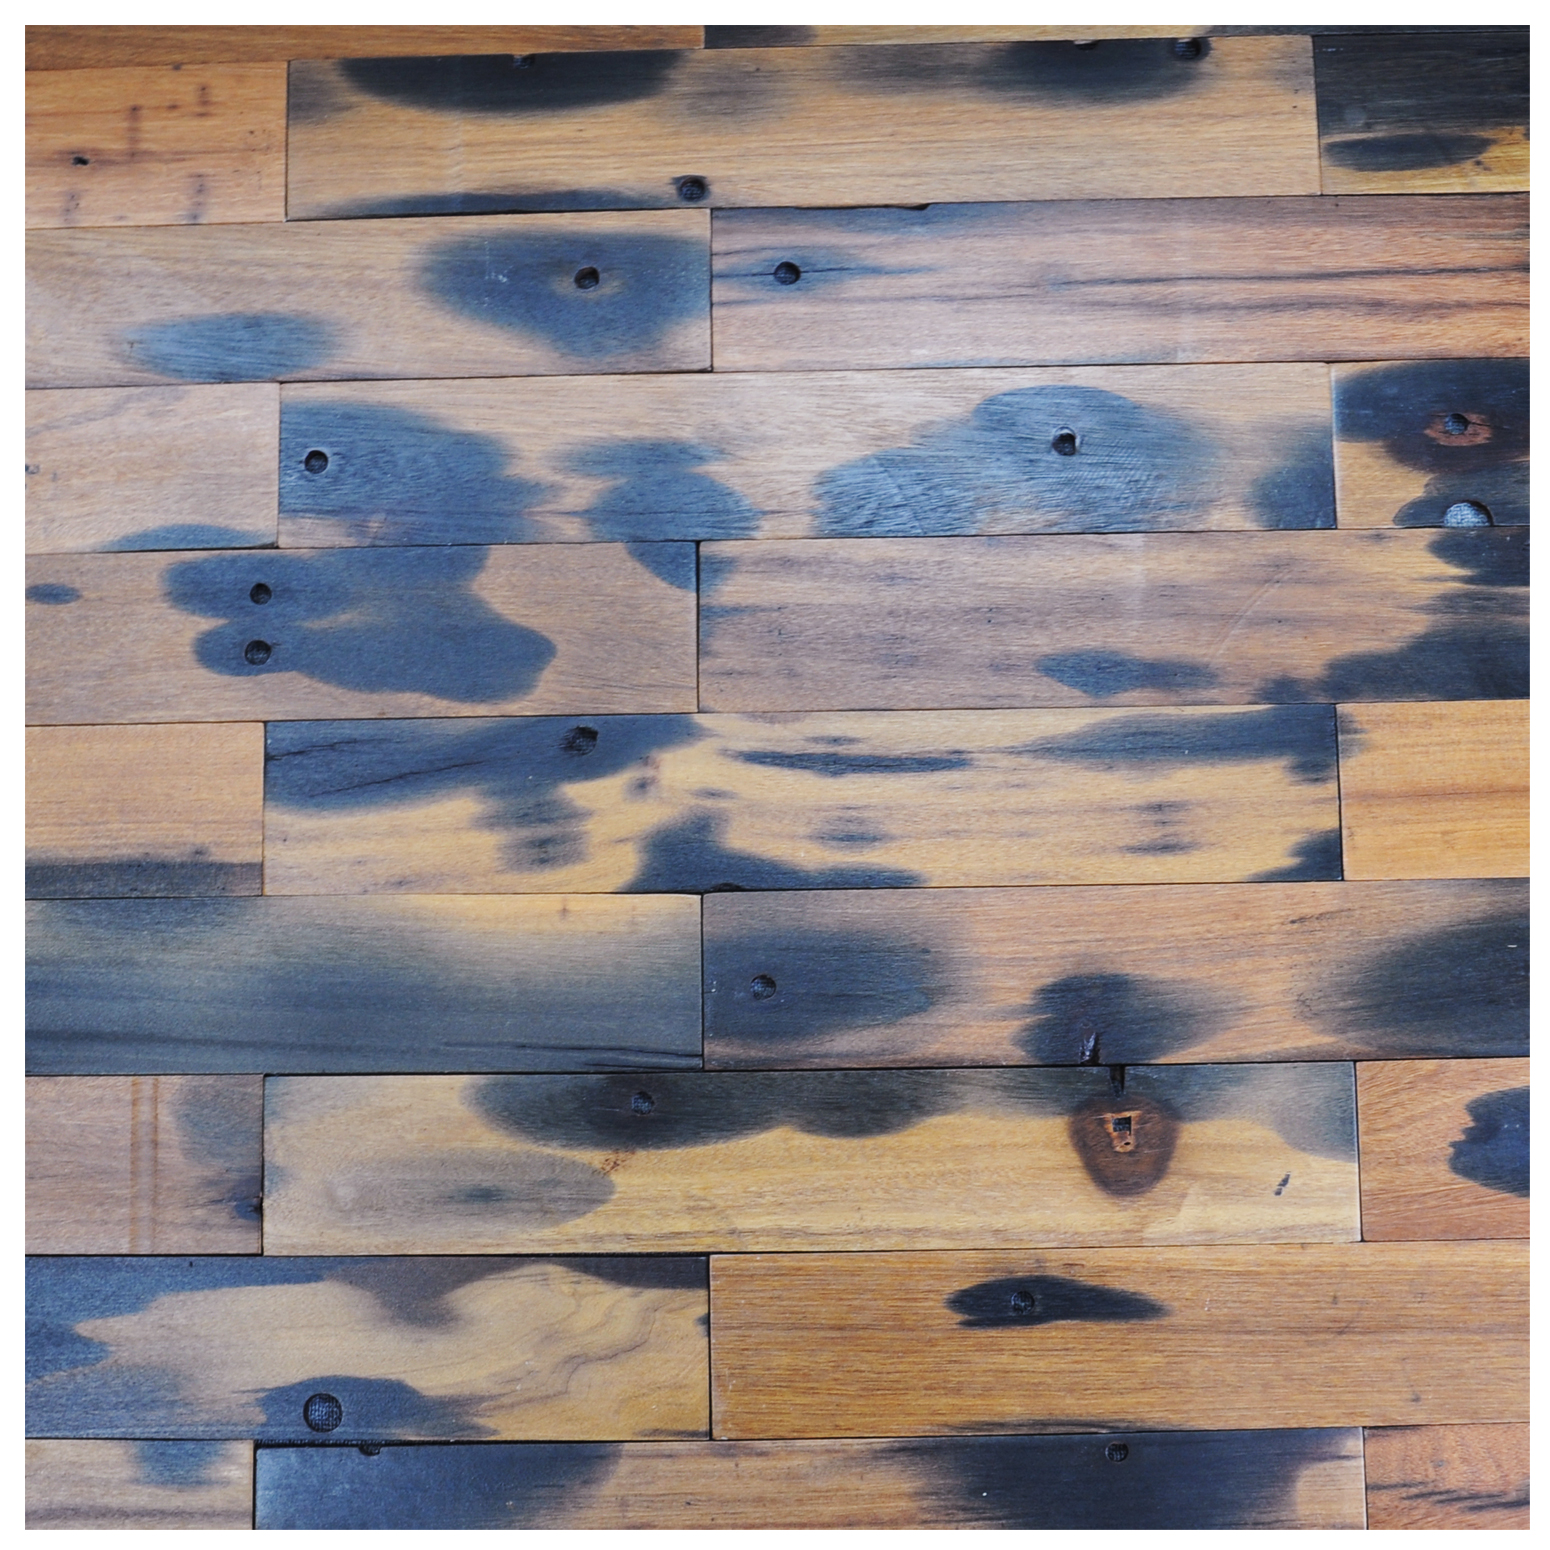 A15602 - Reclaimed Boat Wood Tiles 4